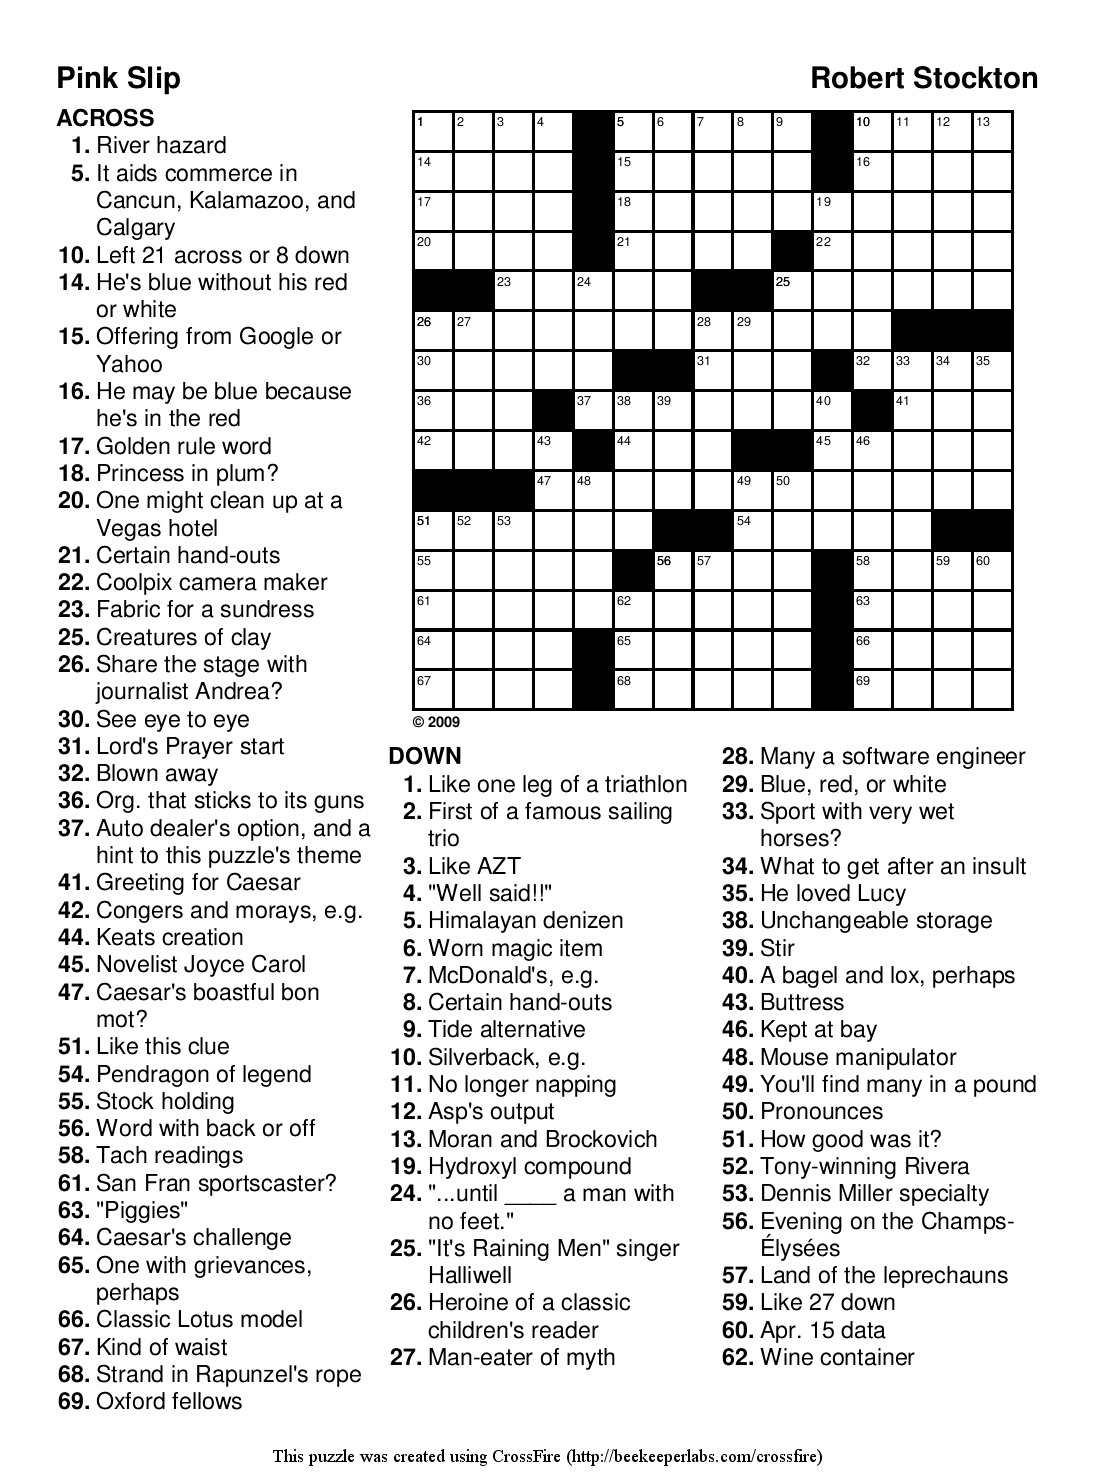 Printable Puzzles For Adults | Easy Word Puzzles Printable Festivals - Free Easy Printable Crossword Puzzles With Answers